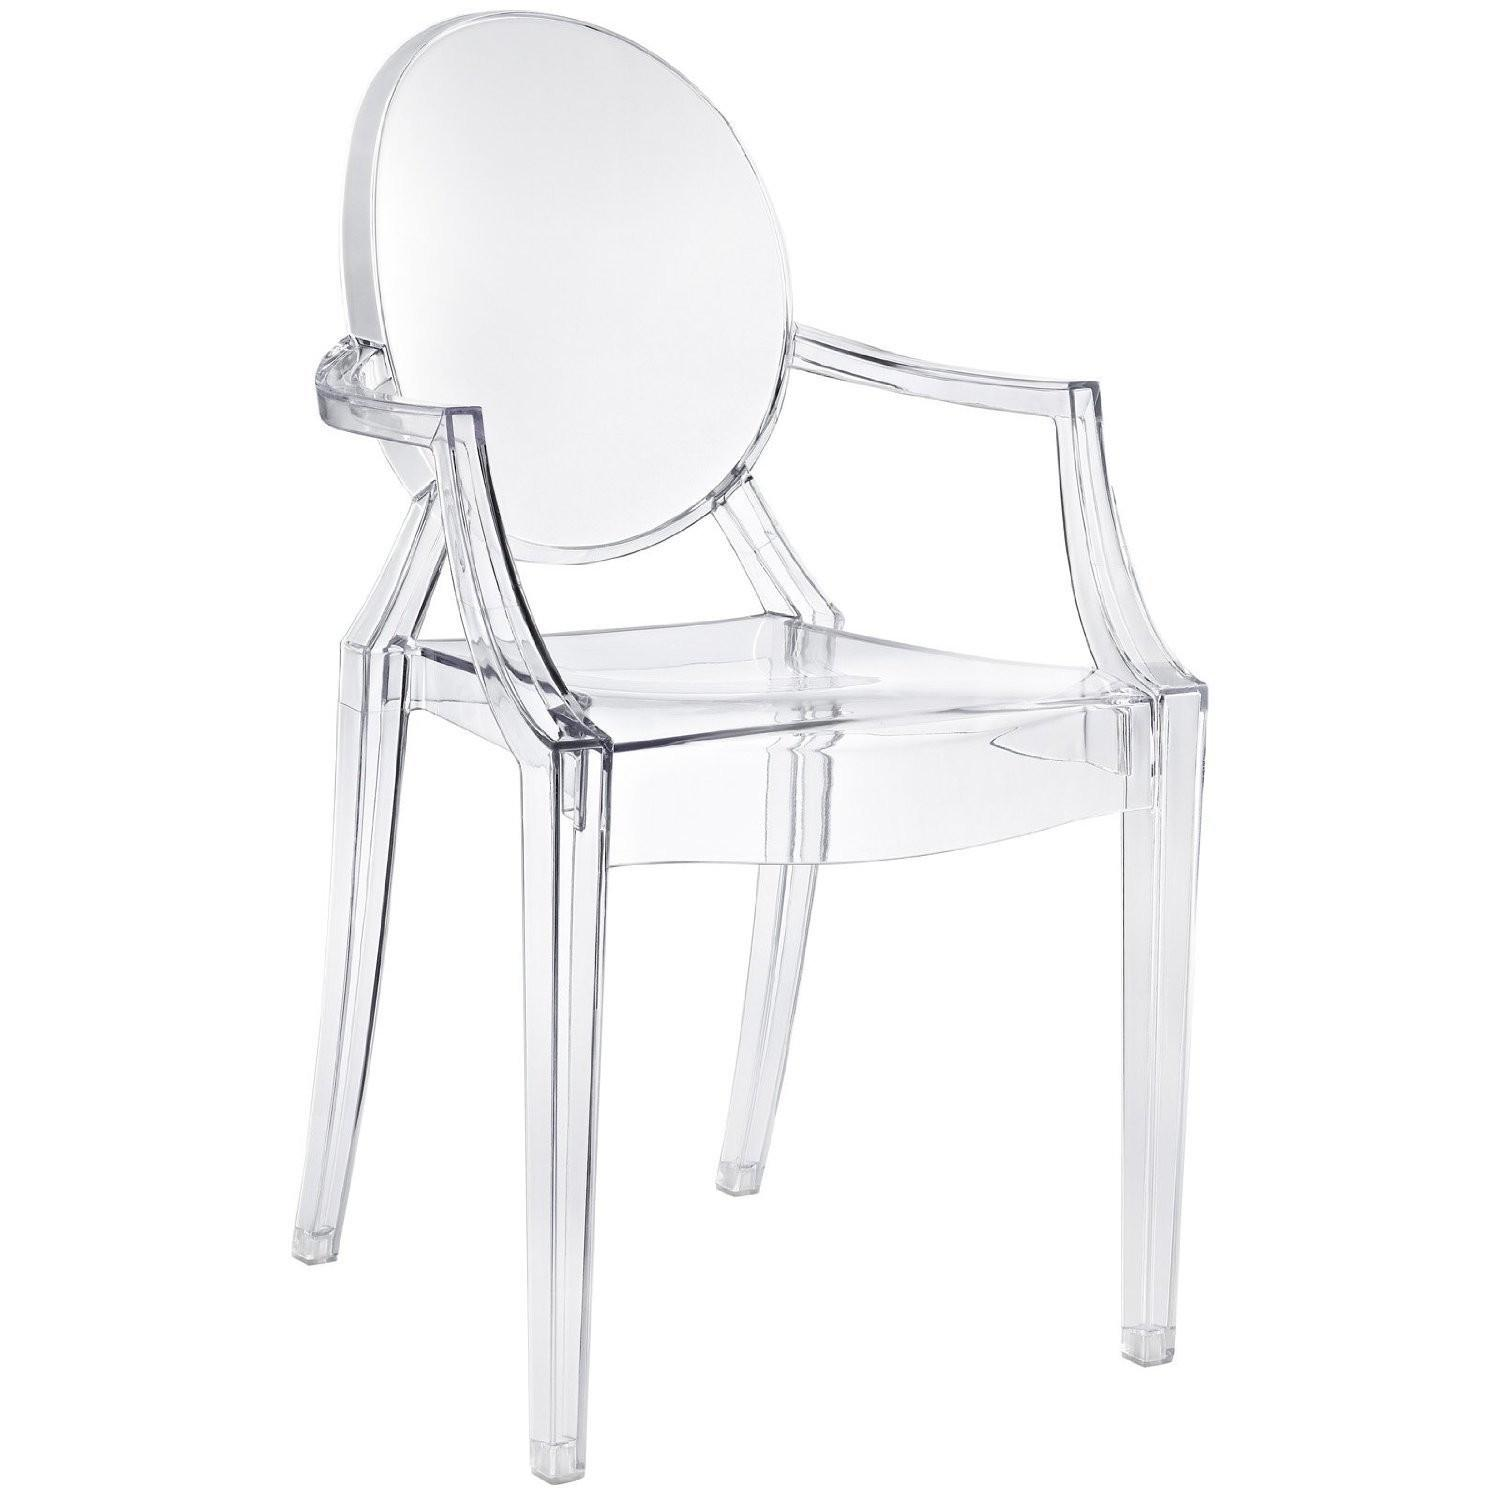 Iconic Philippe Starck Designs Collection Photos